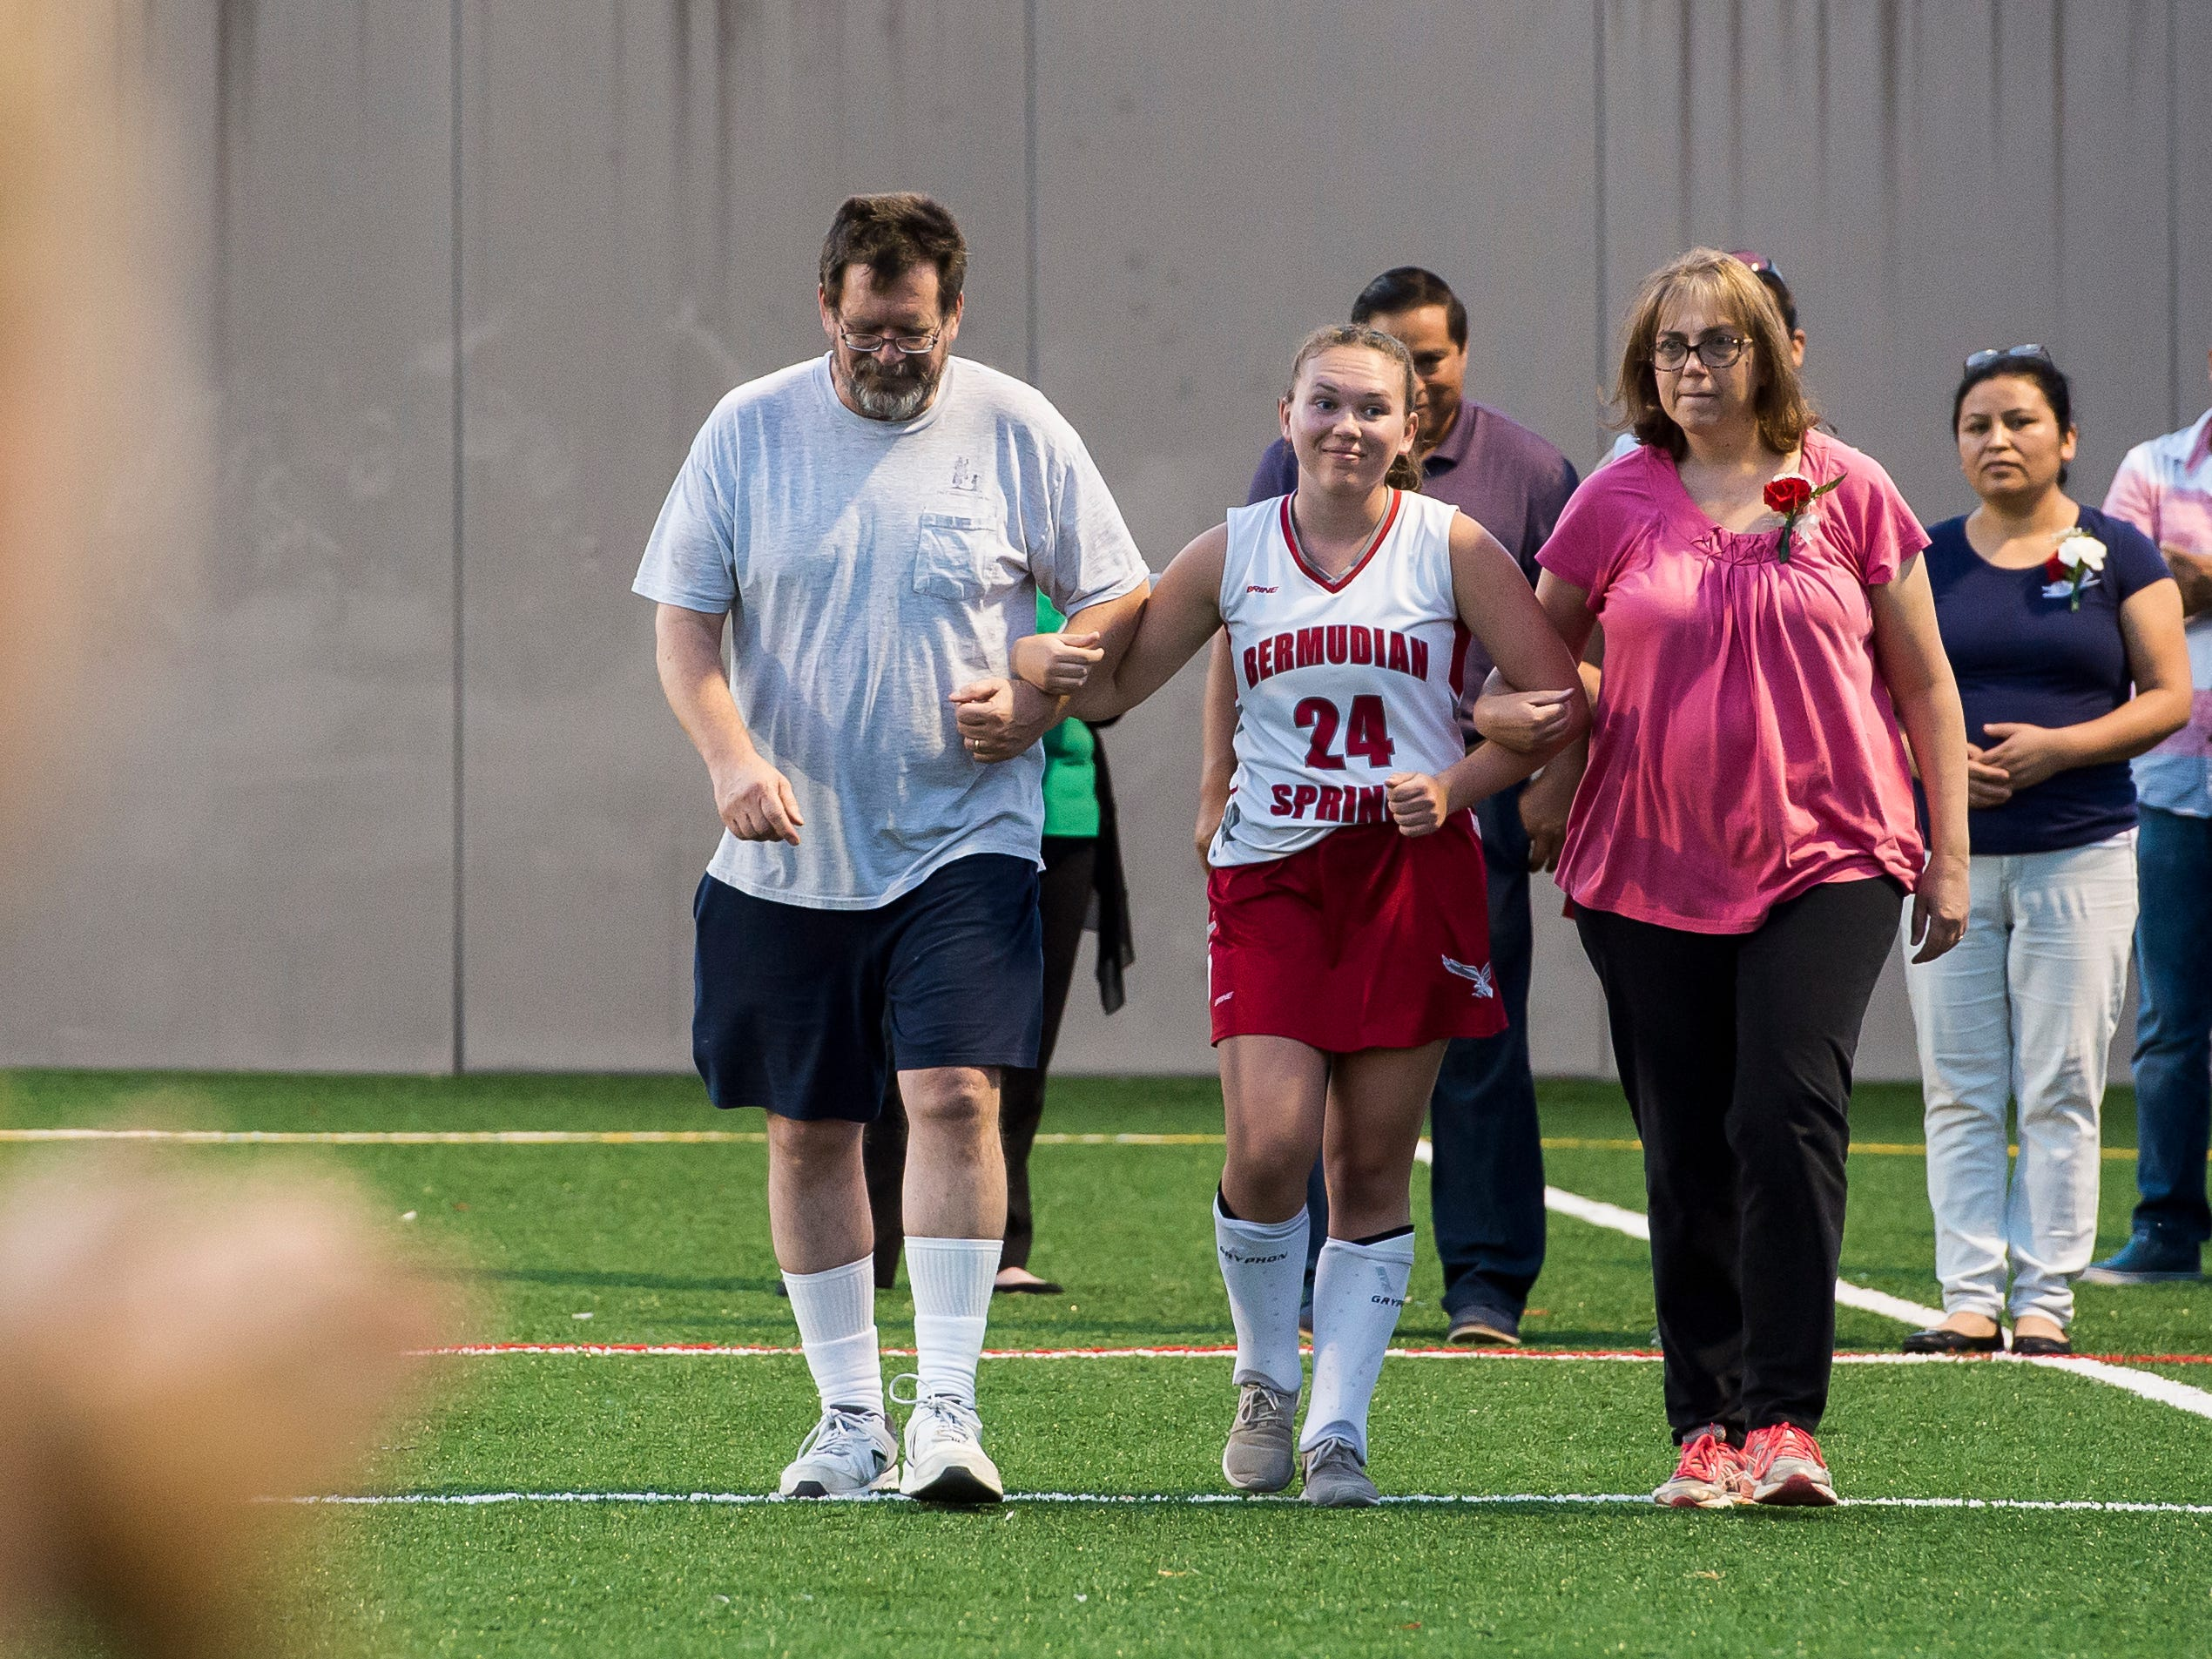 Bermudian Springs senior Bekah Eaton is recognized during a senior night ceremony on Tuesday, October 9, 2018. The Eagles won 4-0.